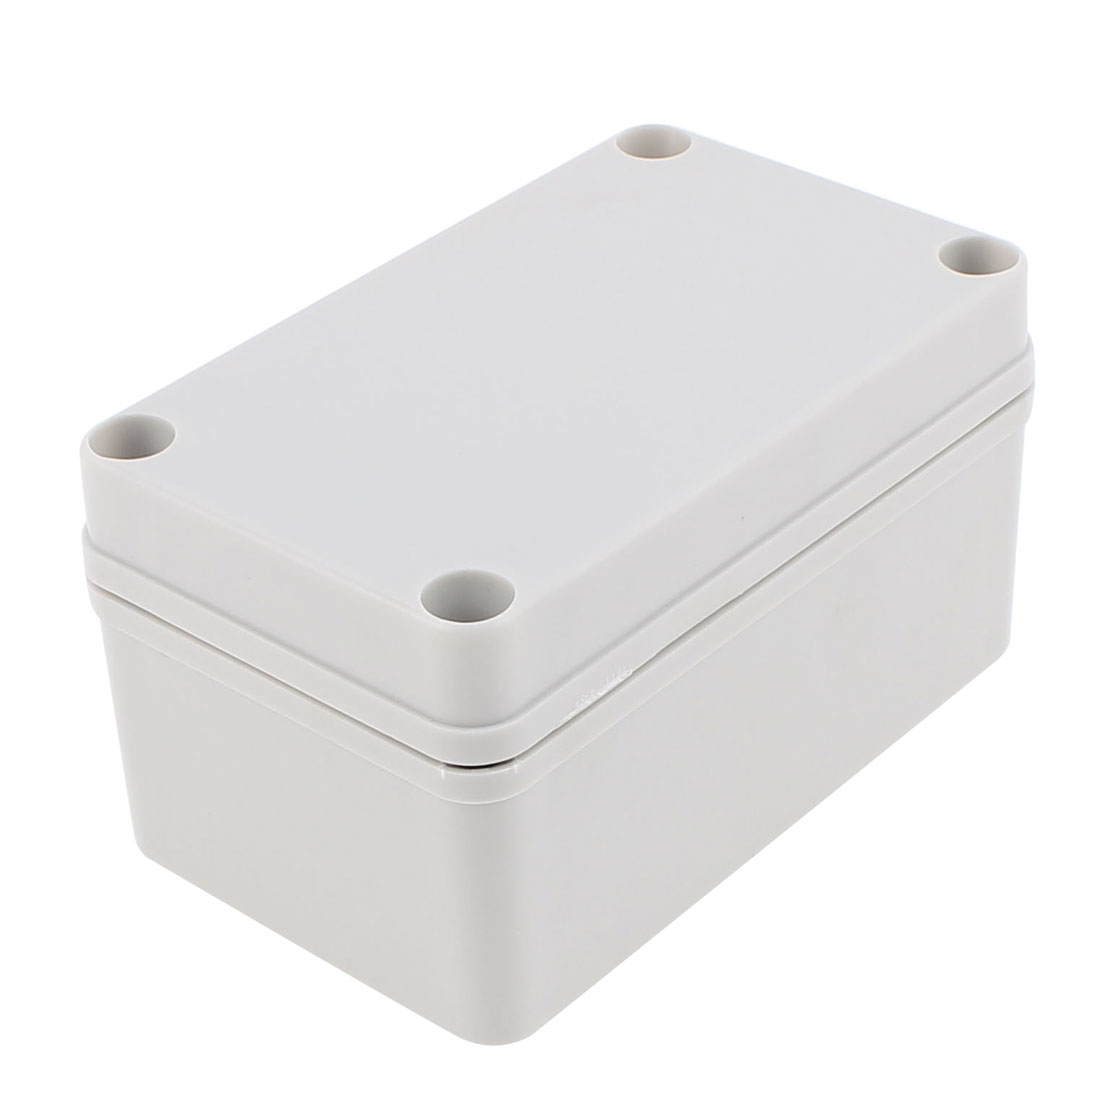 130 x 80 x 70mm Dustproof IP65 Junction Box Terminal Connecting Box Enclosure